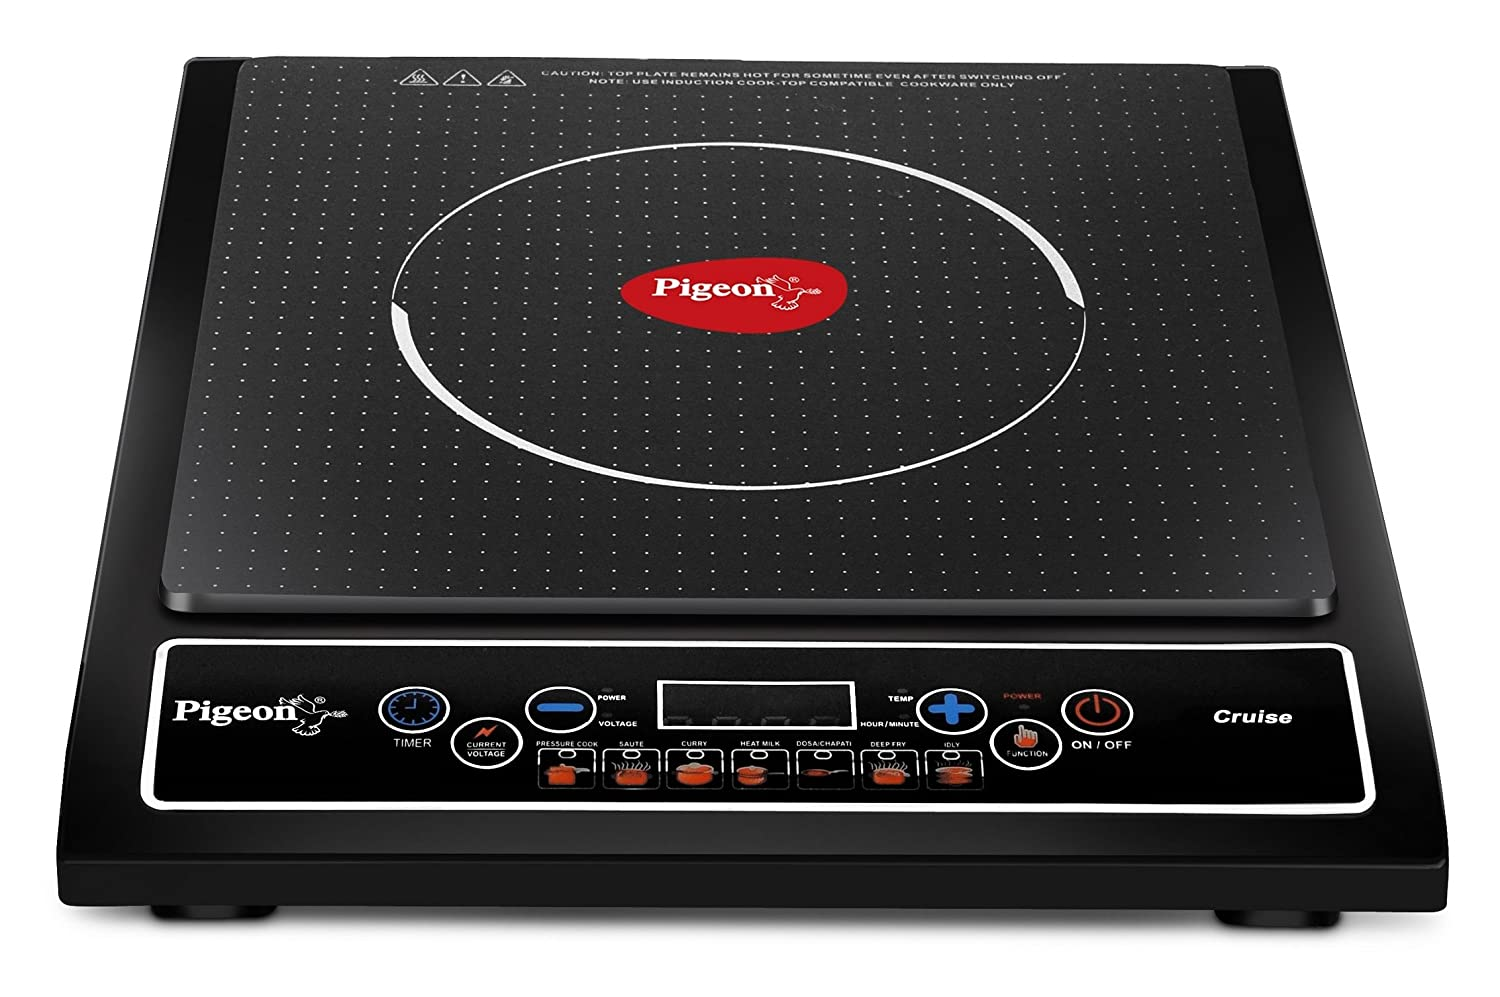 Pigeon Cruise 1800-Watt Induction Cooktop (Black)